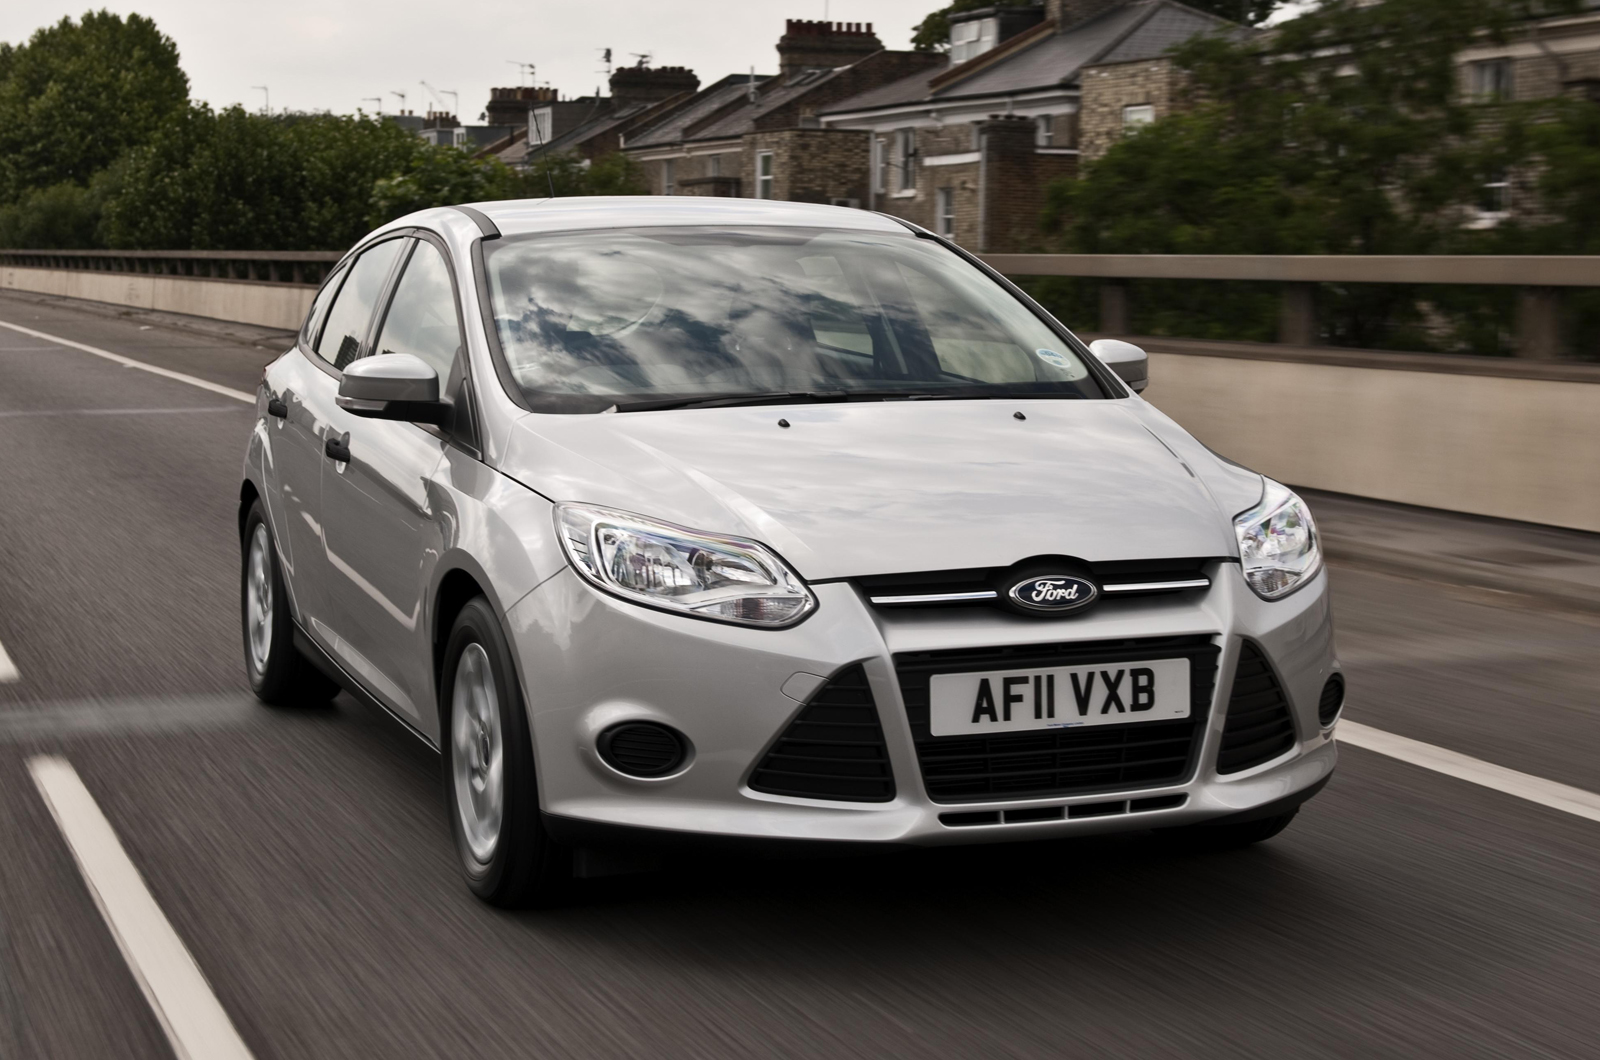 Ford Focus 1.0 2012 photo - 8